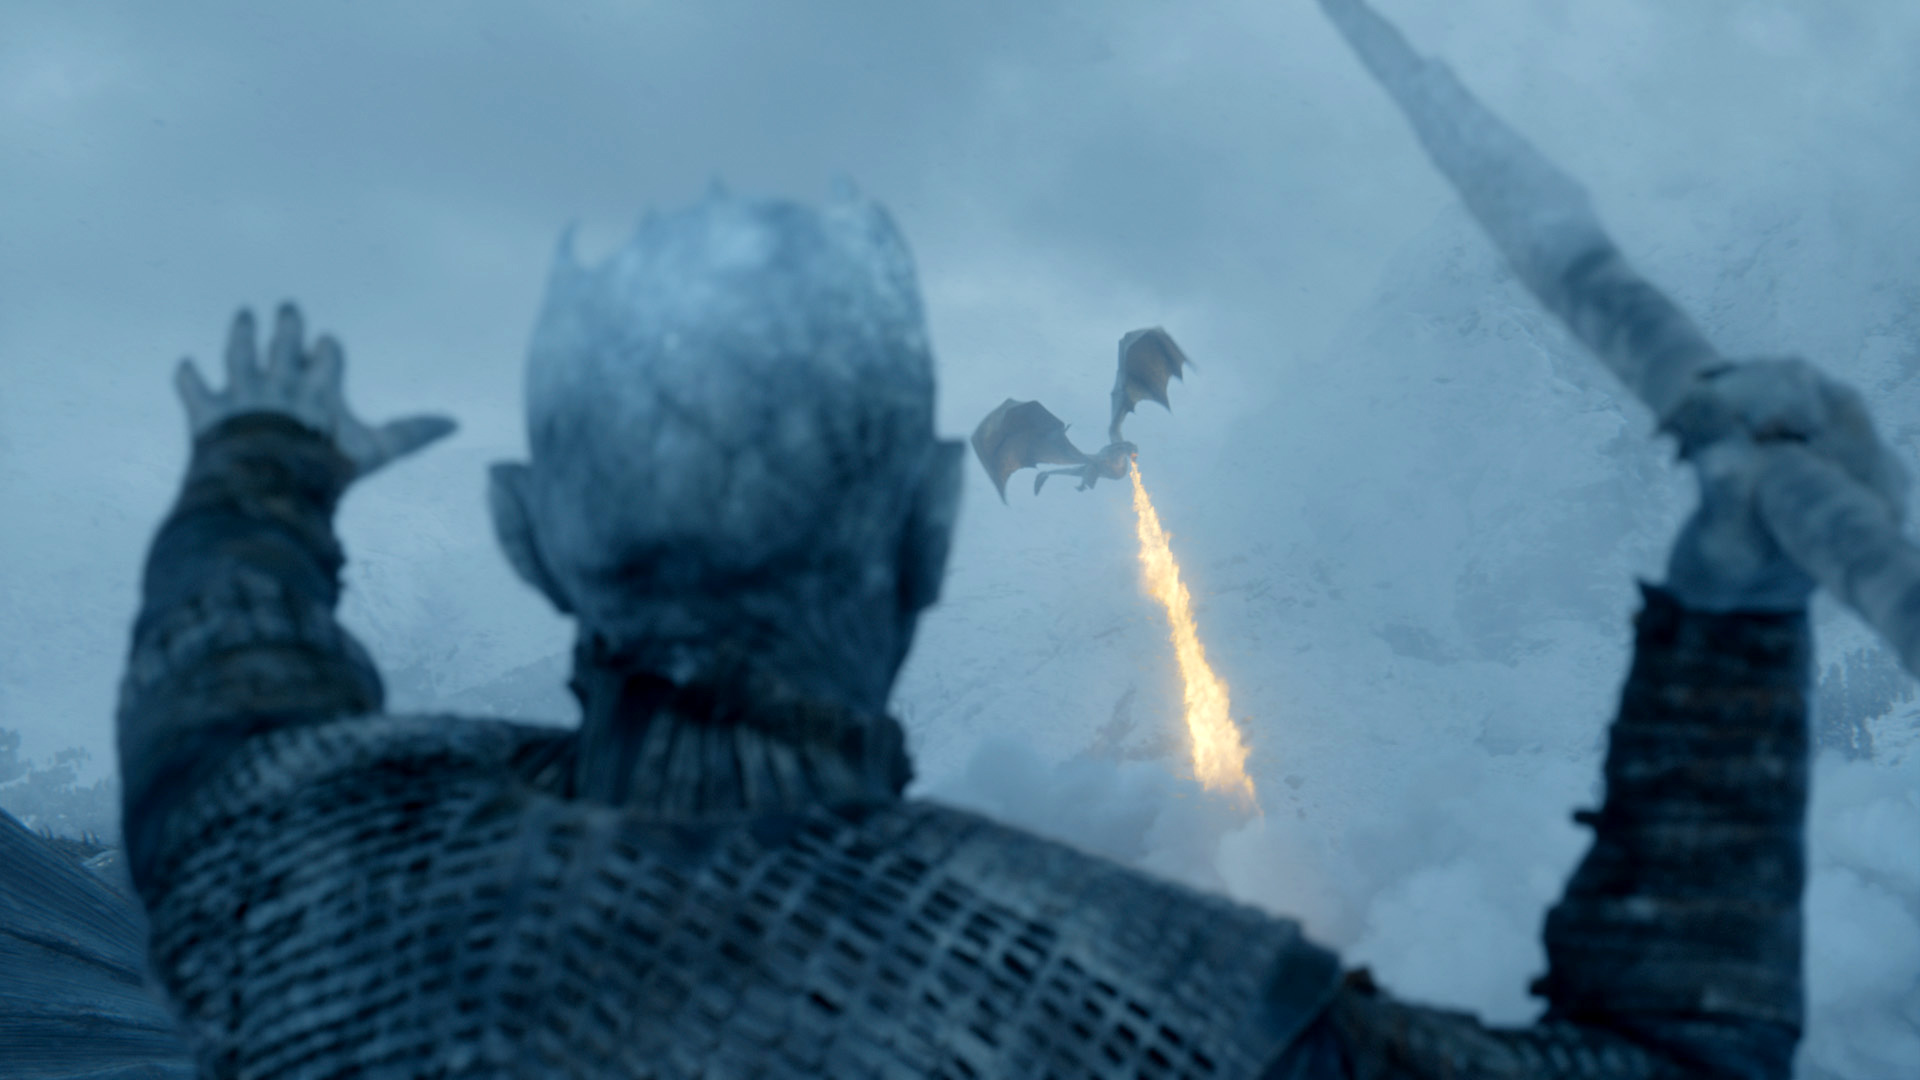 Wallpaper Of Game Of Thrones Night King Viserion Background Hd Image